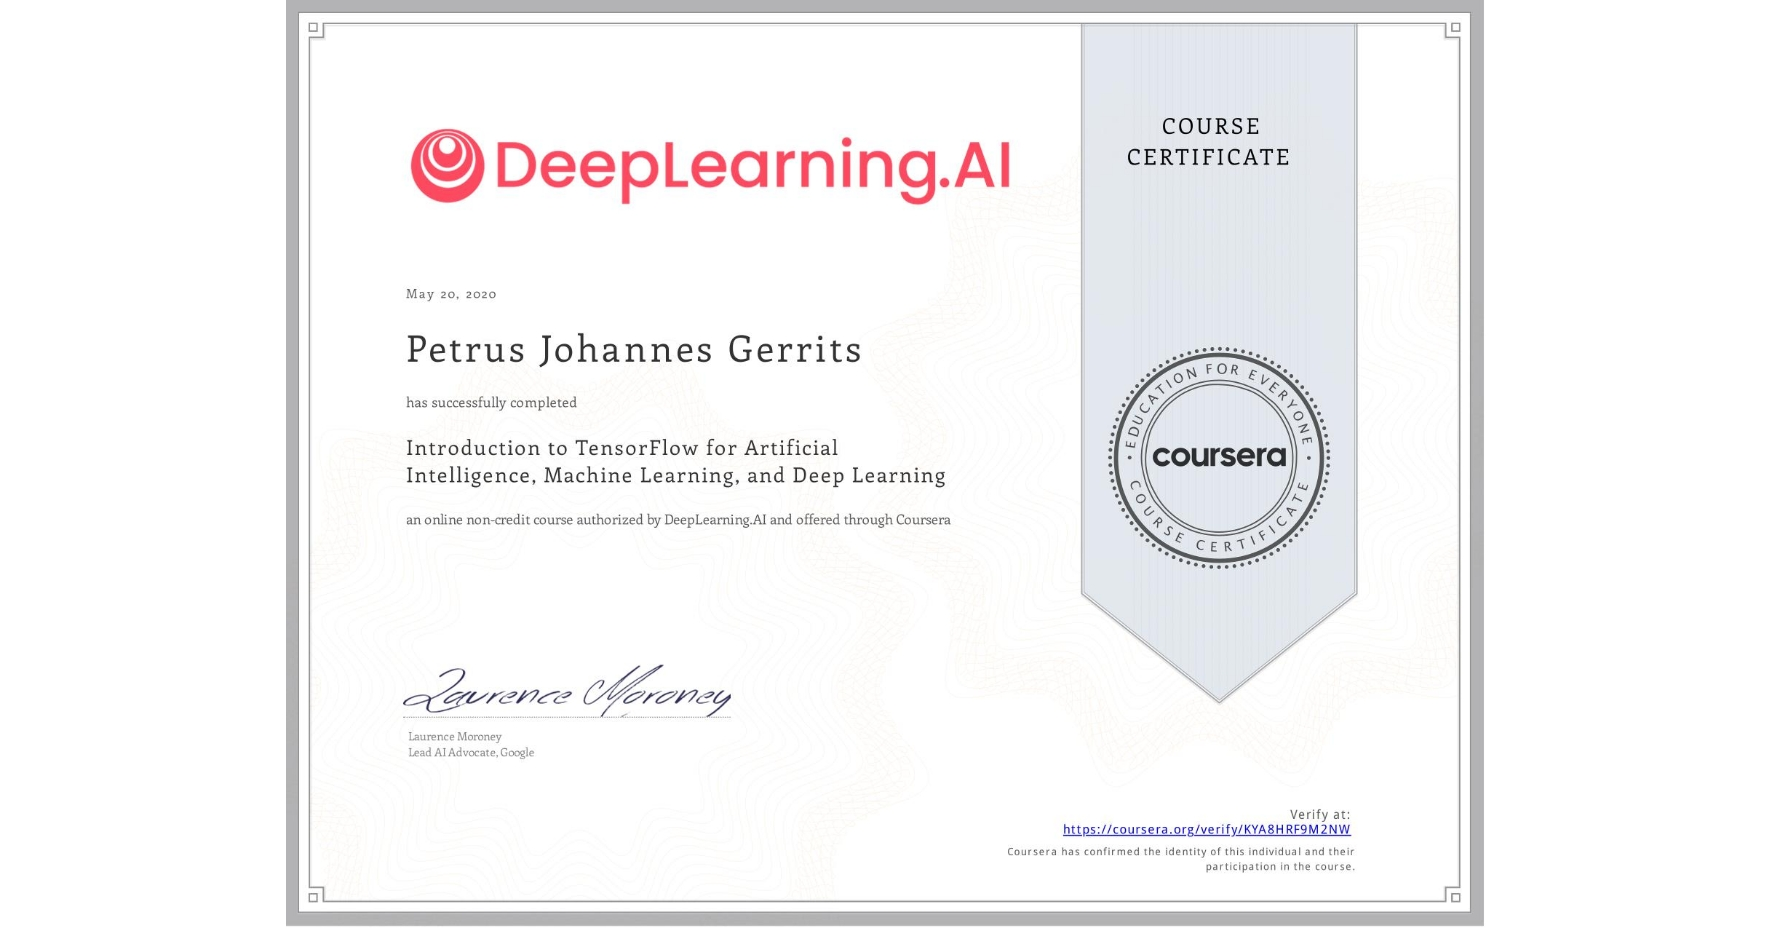 View certificate for Petrus Johannes Gerrits, Introduction to TensorFlow for Artificial Intelligence, Machine Learning, and Deep Learning, an online non-credit course authorized by DeepLearning.AI and offered through Coursera